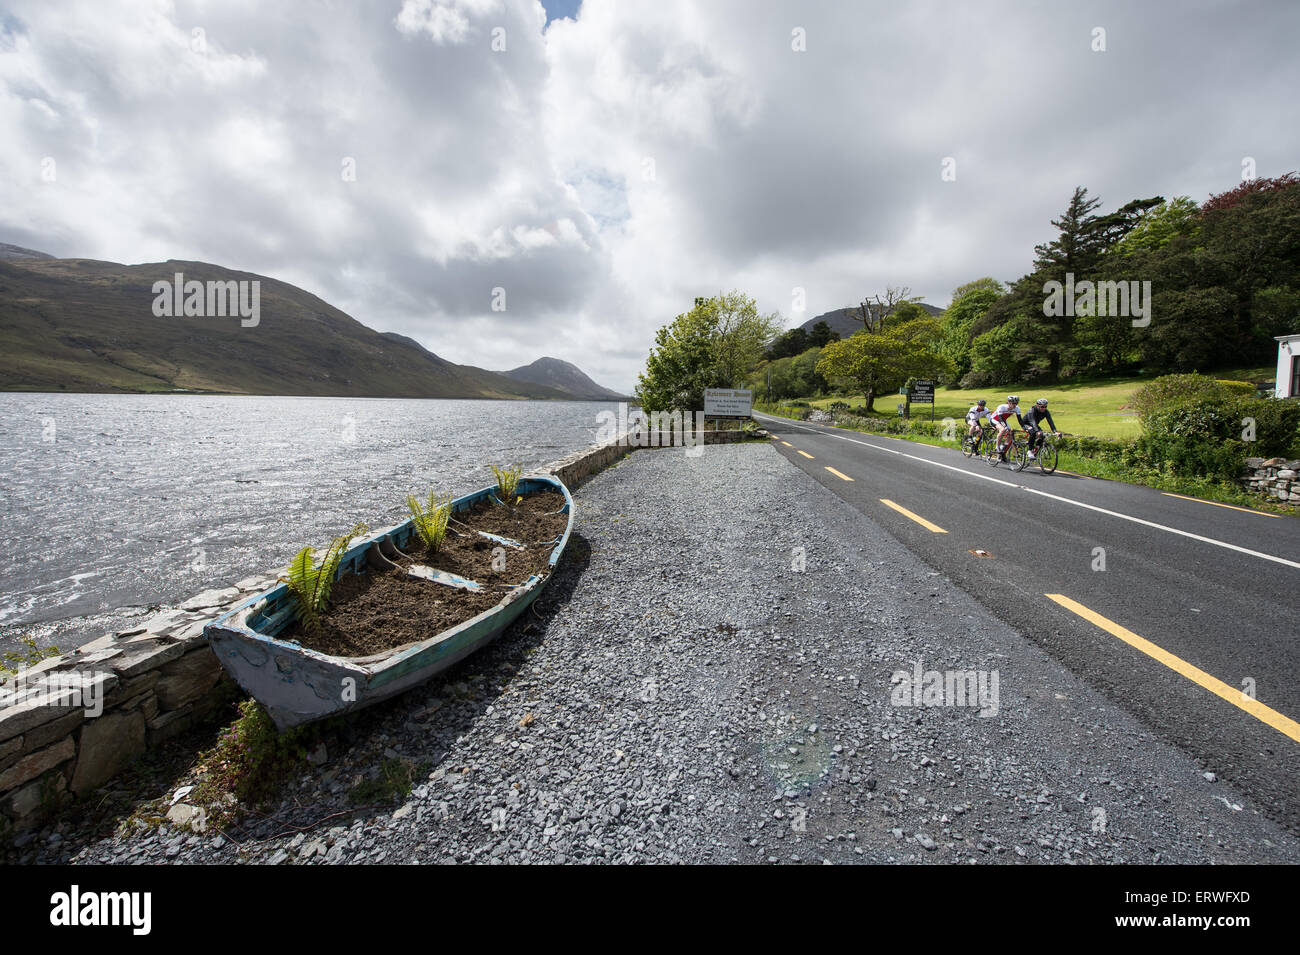 Cycling in the Connemara National Park region of Galway, Ireland - Stock Image